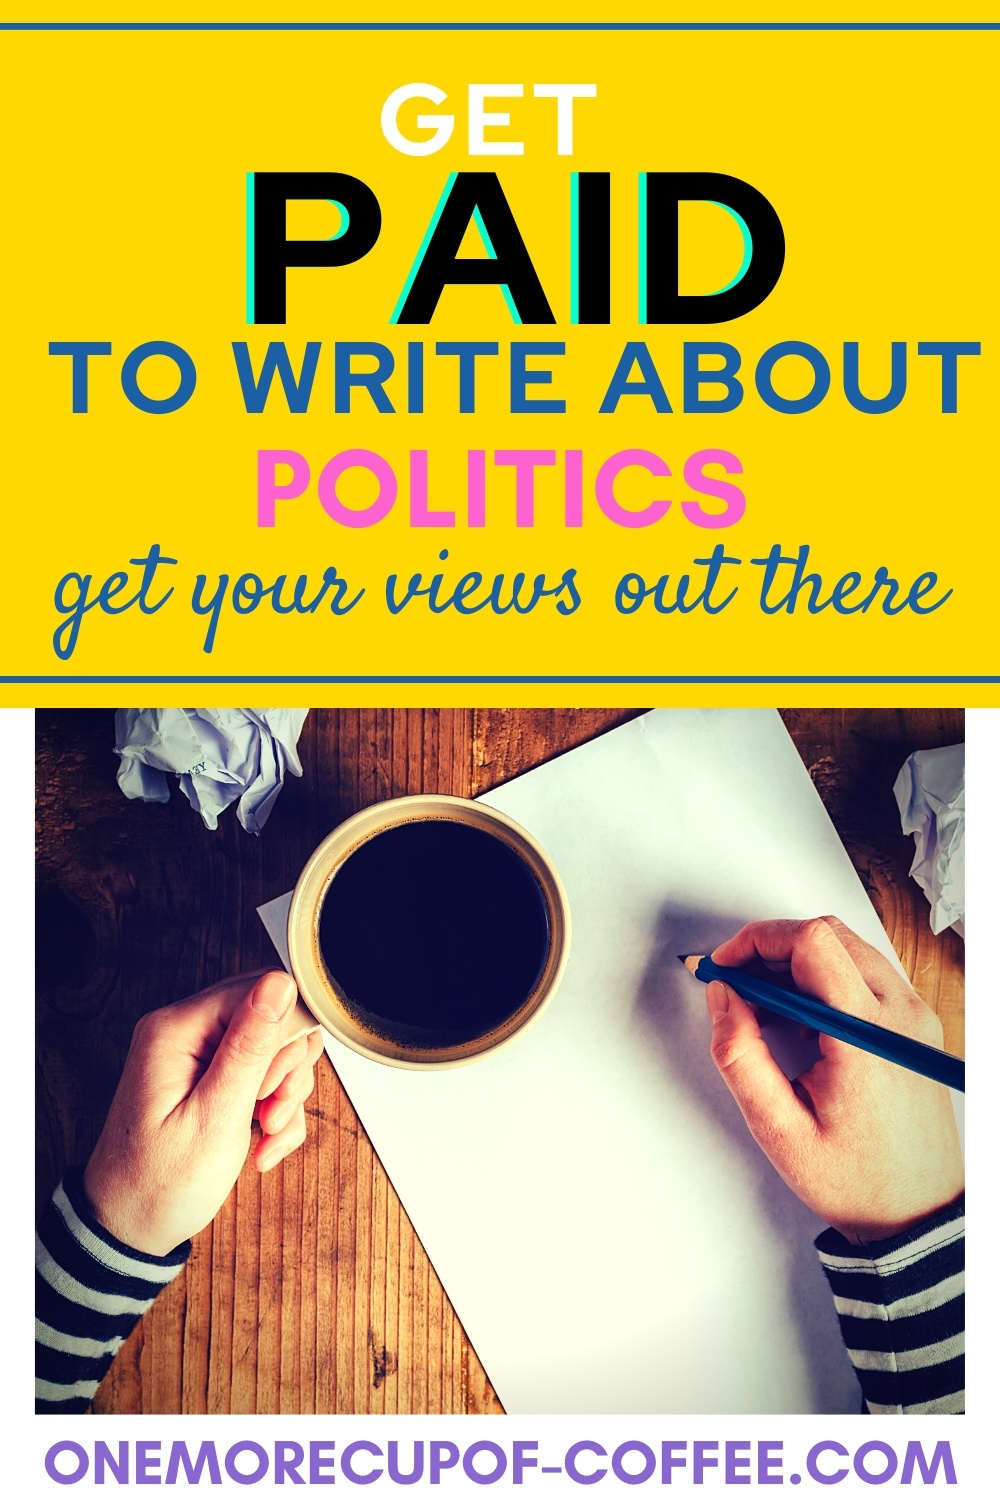 Writer at desk with pen, paper, and a cup of coffee representing how you can get paid to write about politics.